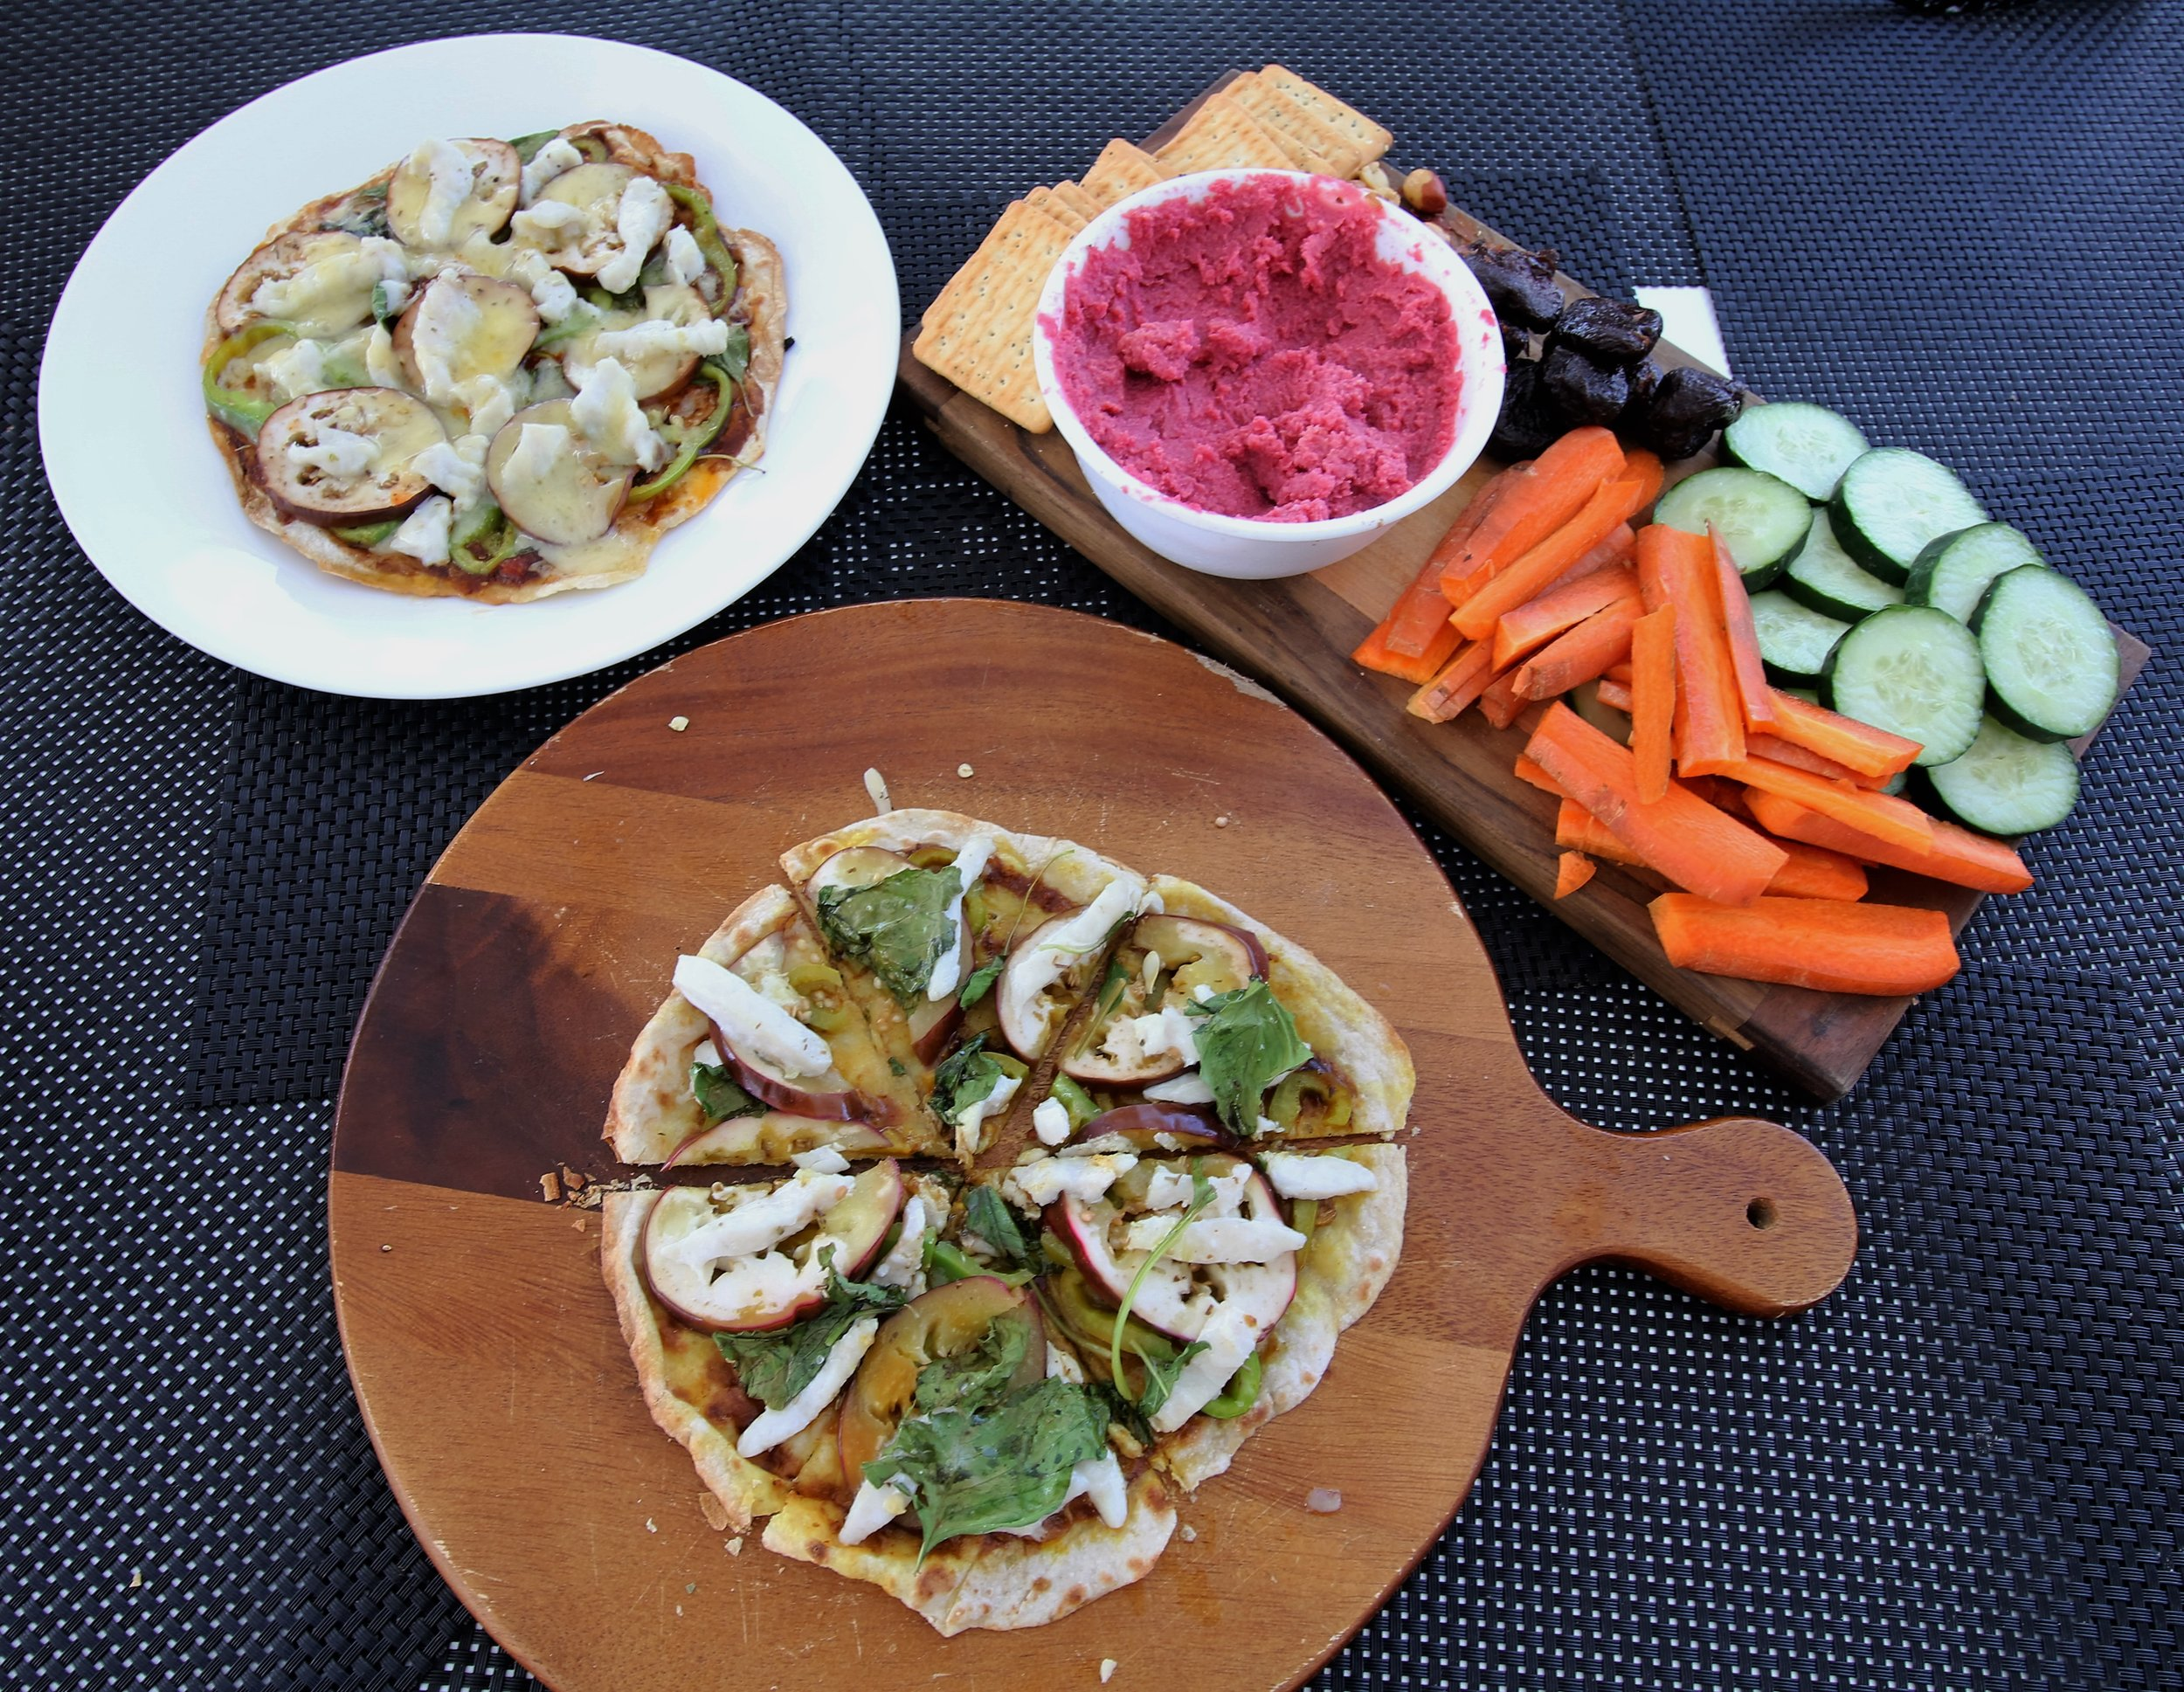 A typical Roam slap together feast. Rotti base pizzas with Spanish mackerel caught in Fijian waters and a raw veg patter with beetroot dip. I hope you didn't miss your red meat and sugar whilst on board for ten days Bronc ;)